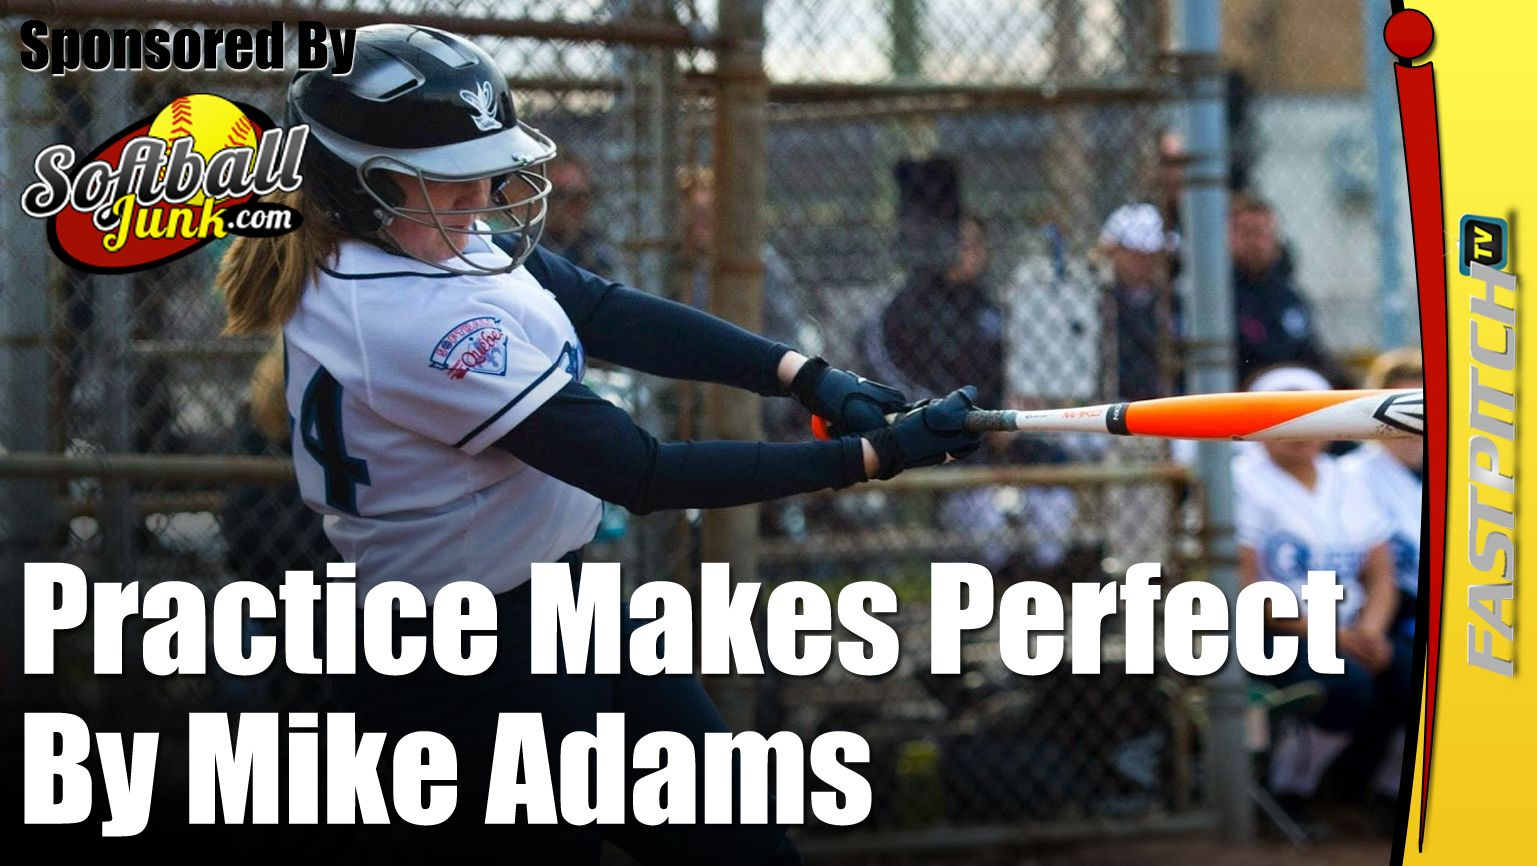 """""""Practice Makes Perfect"""" Written By Mike Adams  Read at http://fastpitch.tv/practice-makes-perfect  LINKS OF INTEREST http://Fastpitch.TV/Store  http://Fastpitch.TV/Instagram http://Fastpitch.TV/Newsletter http://Fastpitch.TV/Books http://Fastpitch.TV/Backers http://Fastpitch.TV/Apps http://Fastpitch.TV/Twitter http://Fastpitch.TV/GooglePlus http://Fastpitch.TV/YouTube http://Fastpitch.TV/Facebook http://Fastpitch.TV/Flickr http://FastpitchMagazine.com/"""